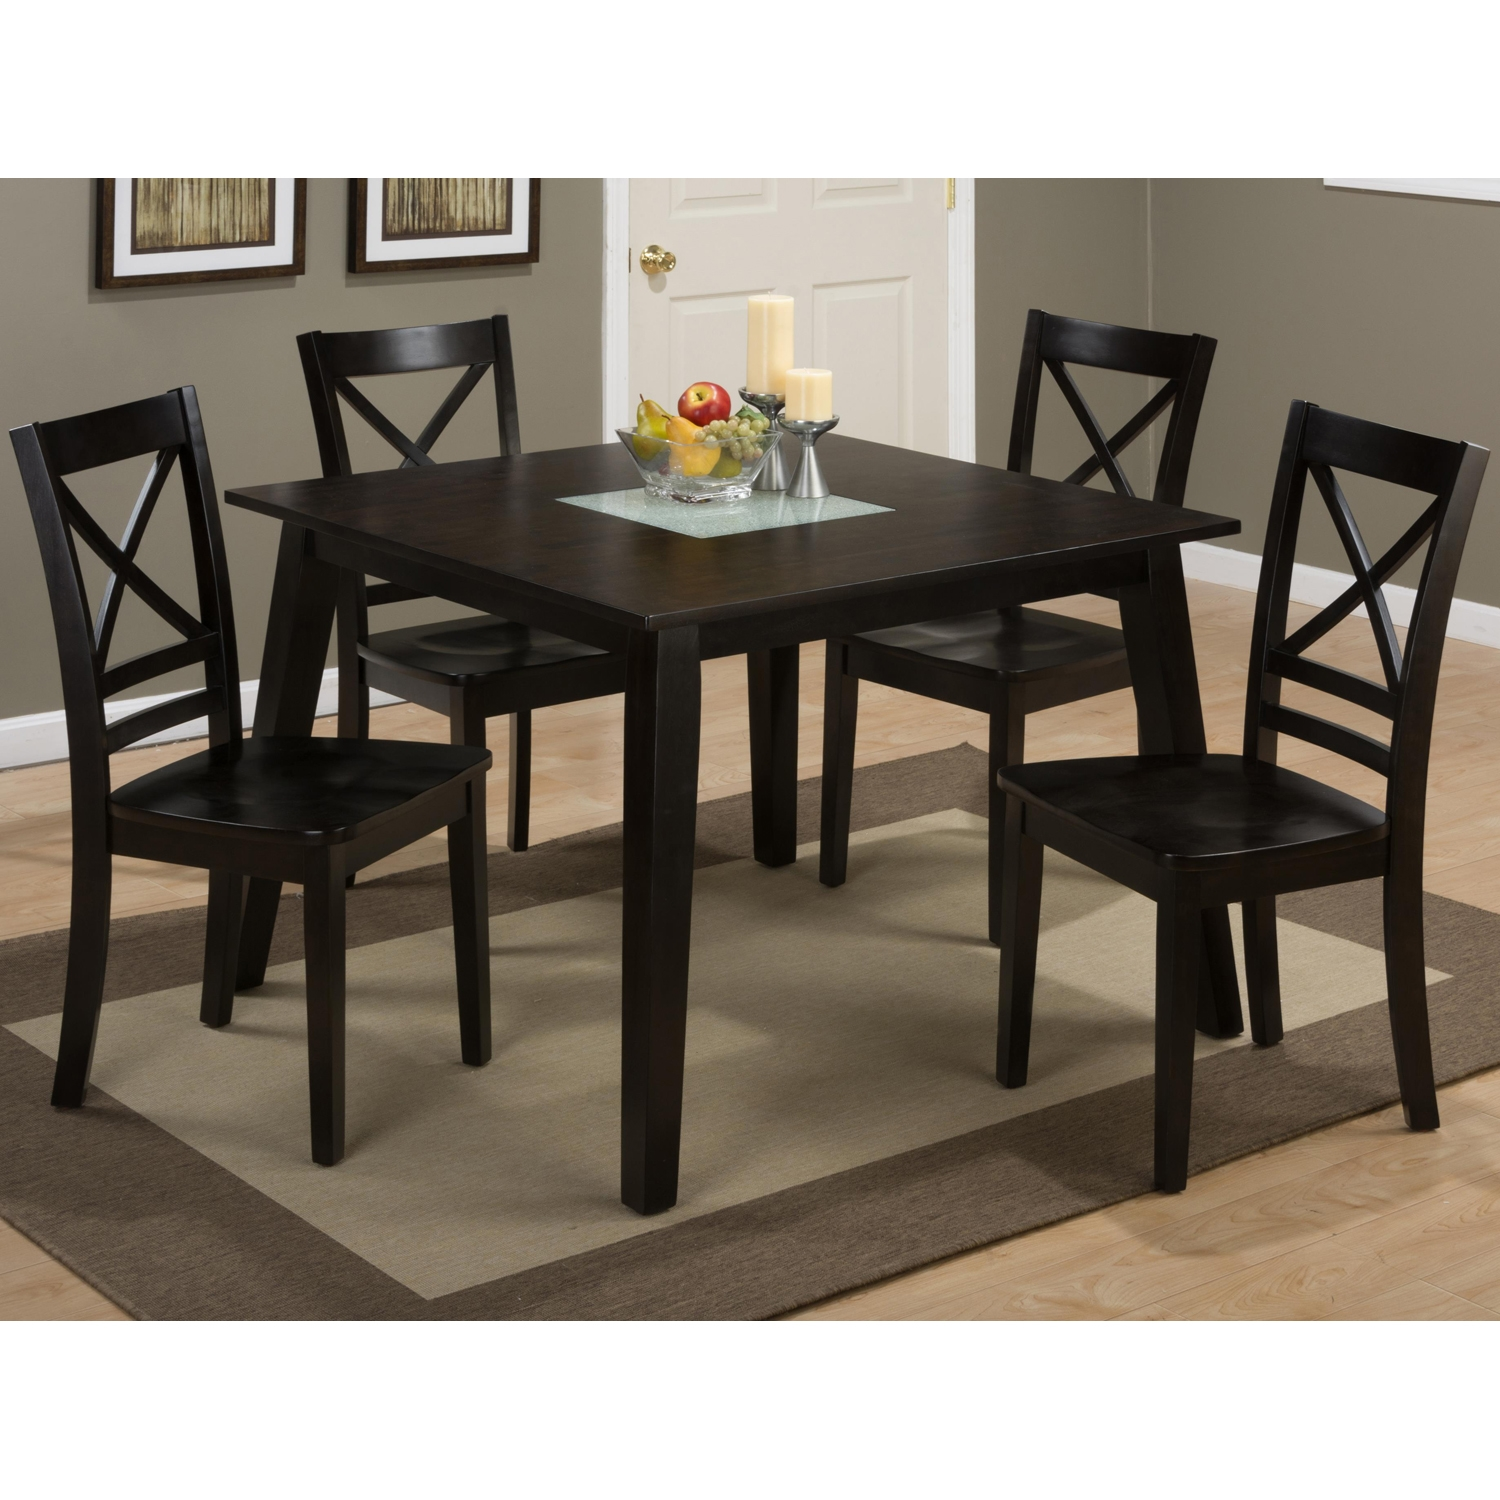 Roasted Java Square Dining Table - Crackled Glass Insert - JOFR-852-42